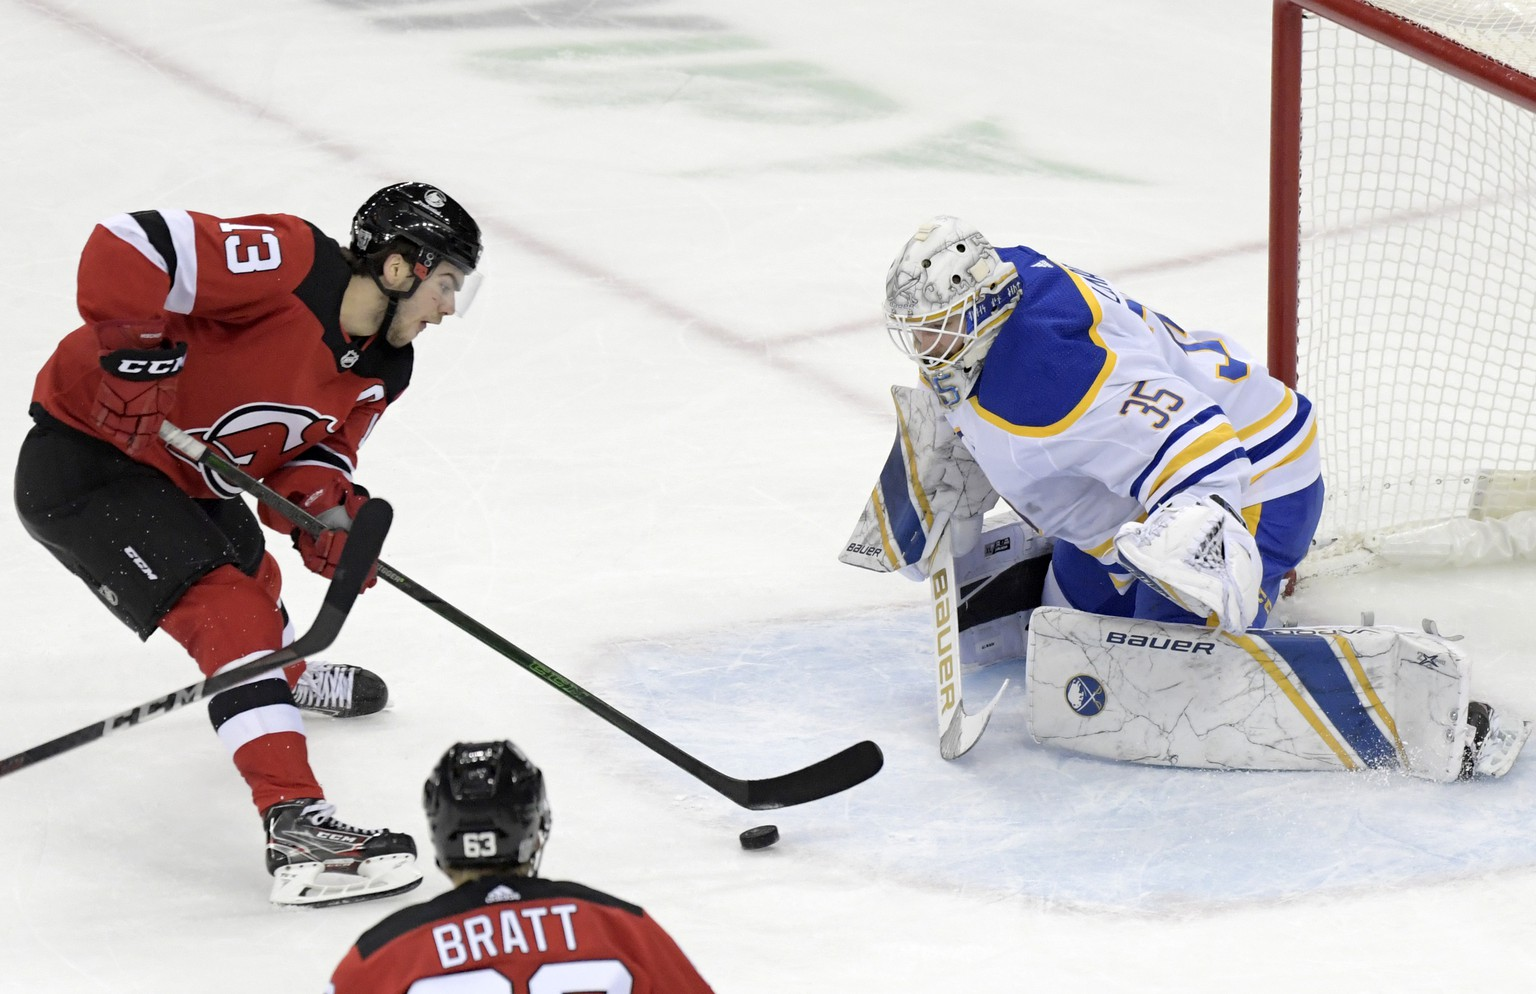 New Jersey Devils center Nico Hischier (13) skates in on Buffalo Sabres goaltender Linus Ullmark (35) during the second period of an NHL hockey game Tuesday, Feb. 23, 2021, in Newark, N.J. (AP Photo/Bill Kostroun)